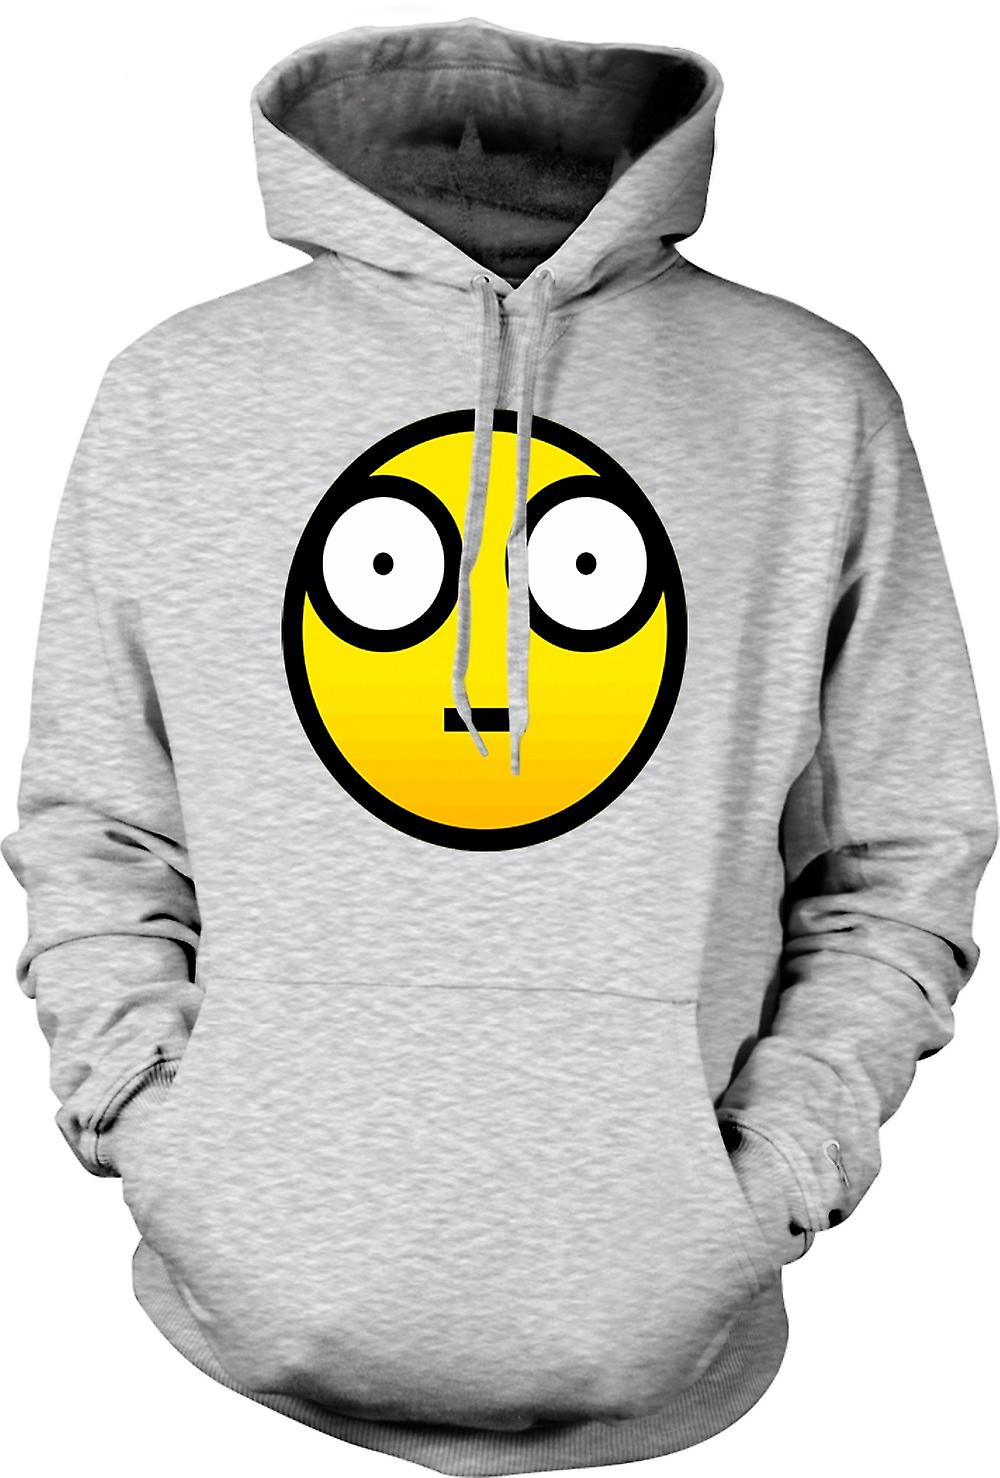 Mens Hoodie - Smiley - Conception fraîche